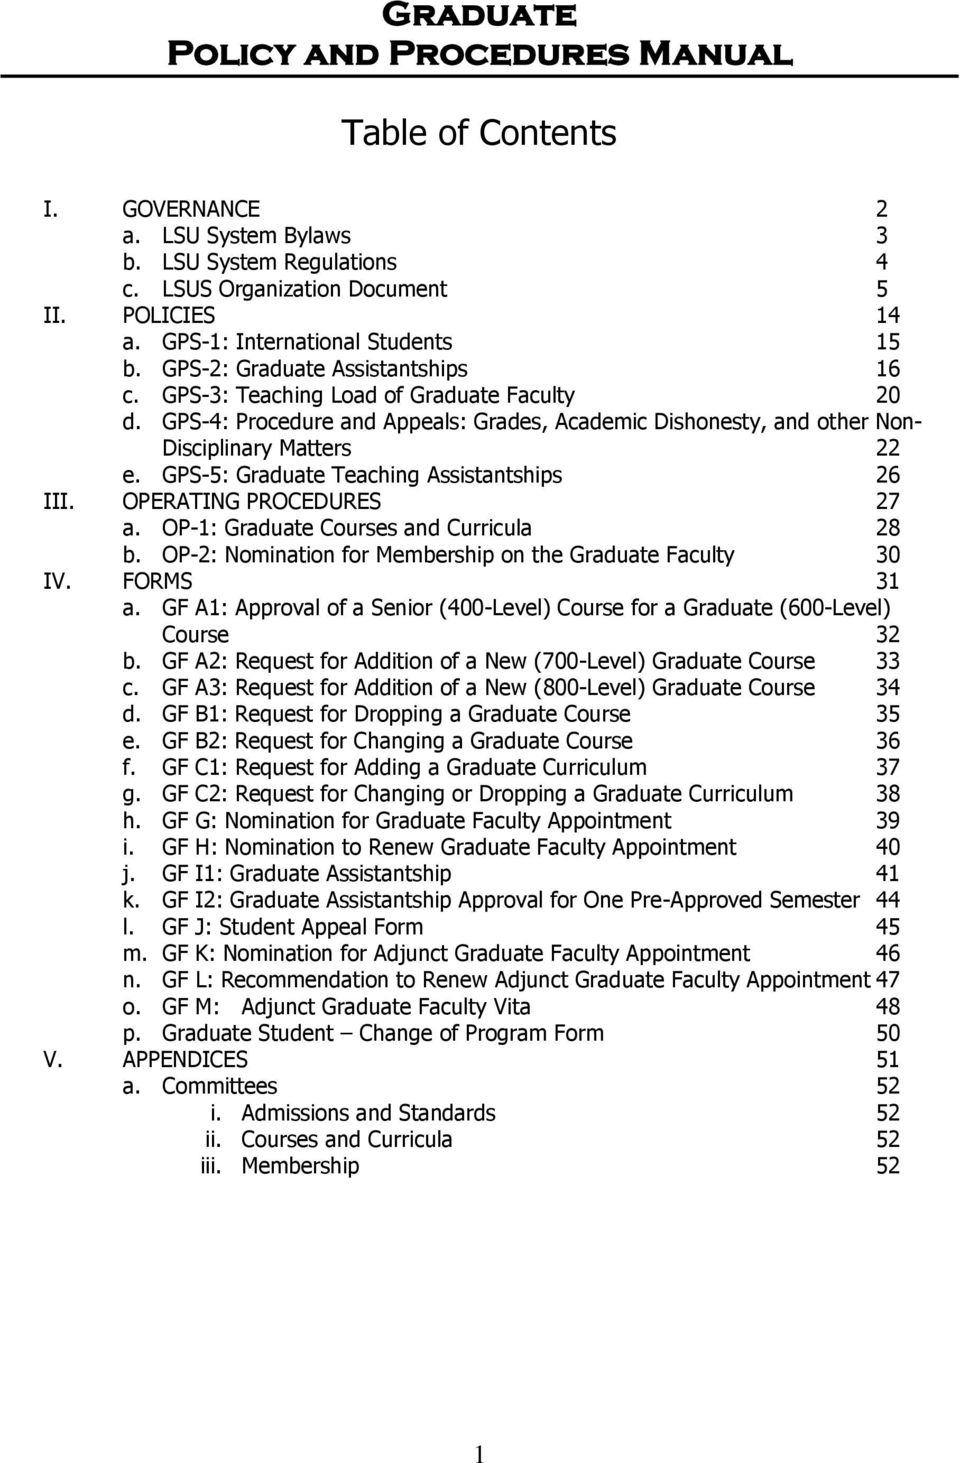 GPS-4: Procedure and Appeals: Grades, Academic Dishonesty, and other Non- Disciplinary Matters 22 e. GPS-5: Graduate Teaching Assistantships 26 III. OPERATING PROCEDURES 27 a.